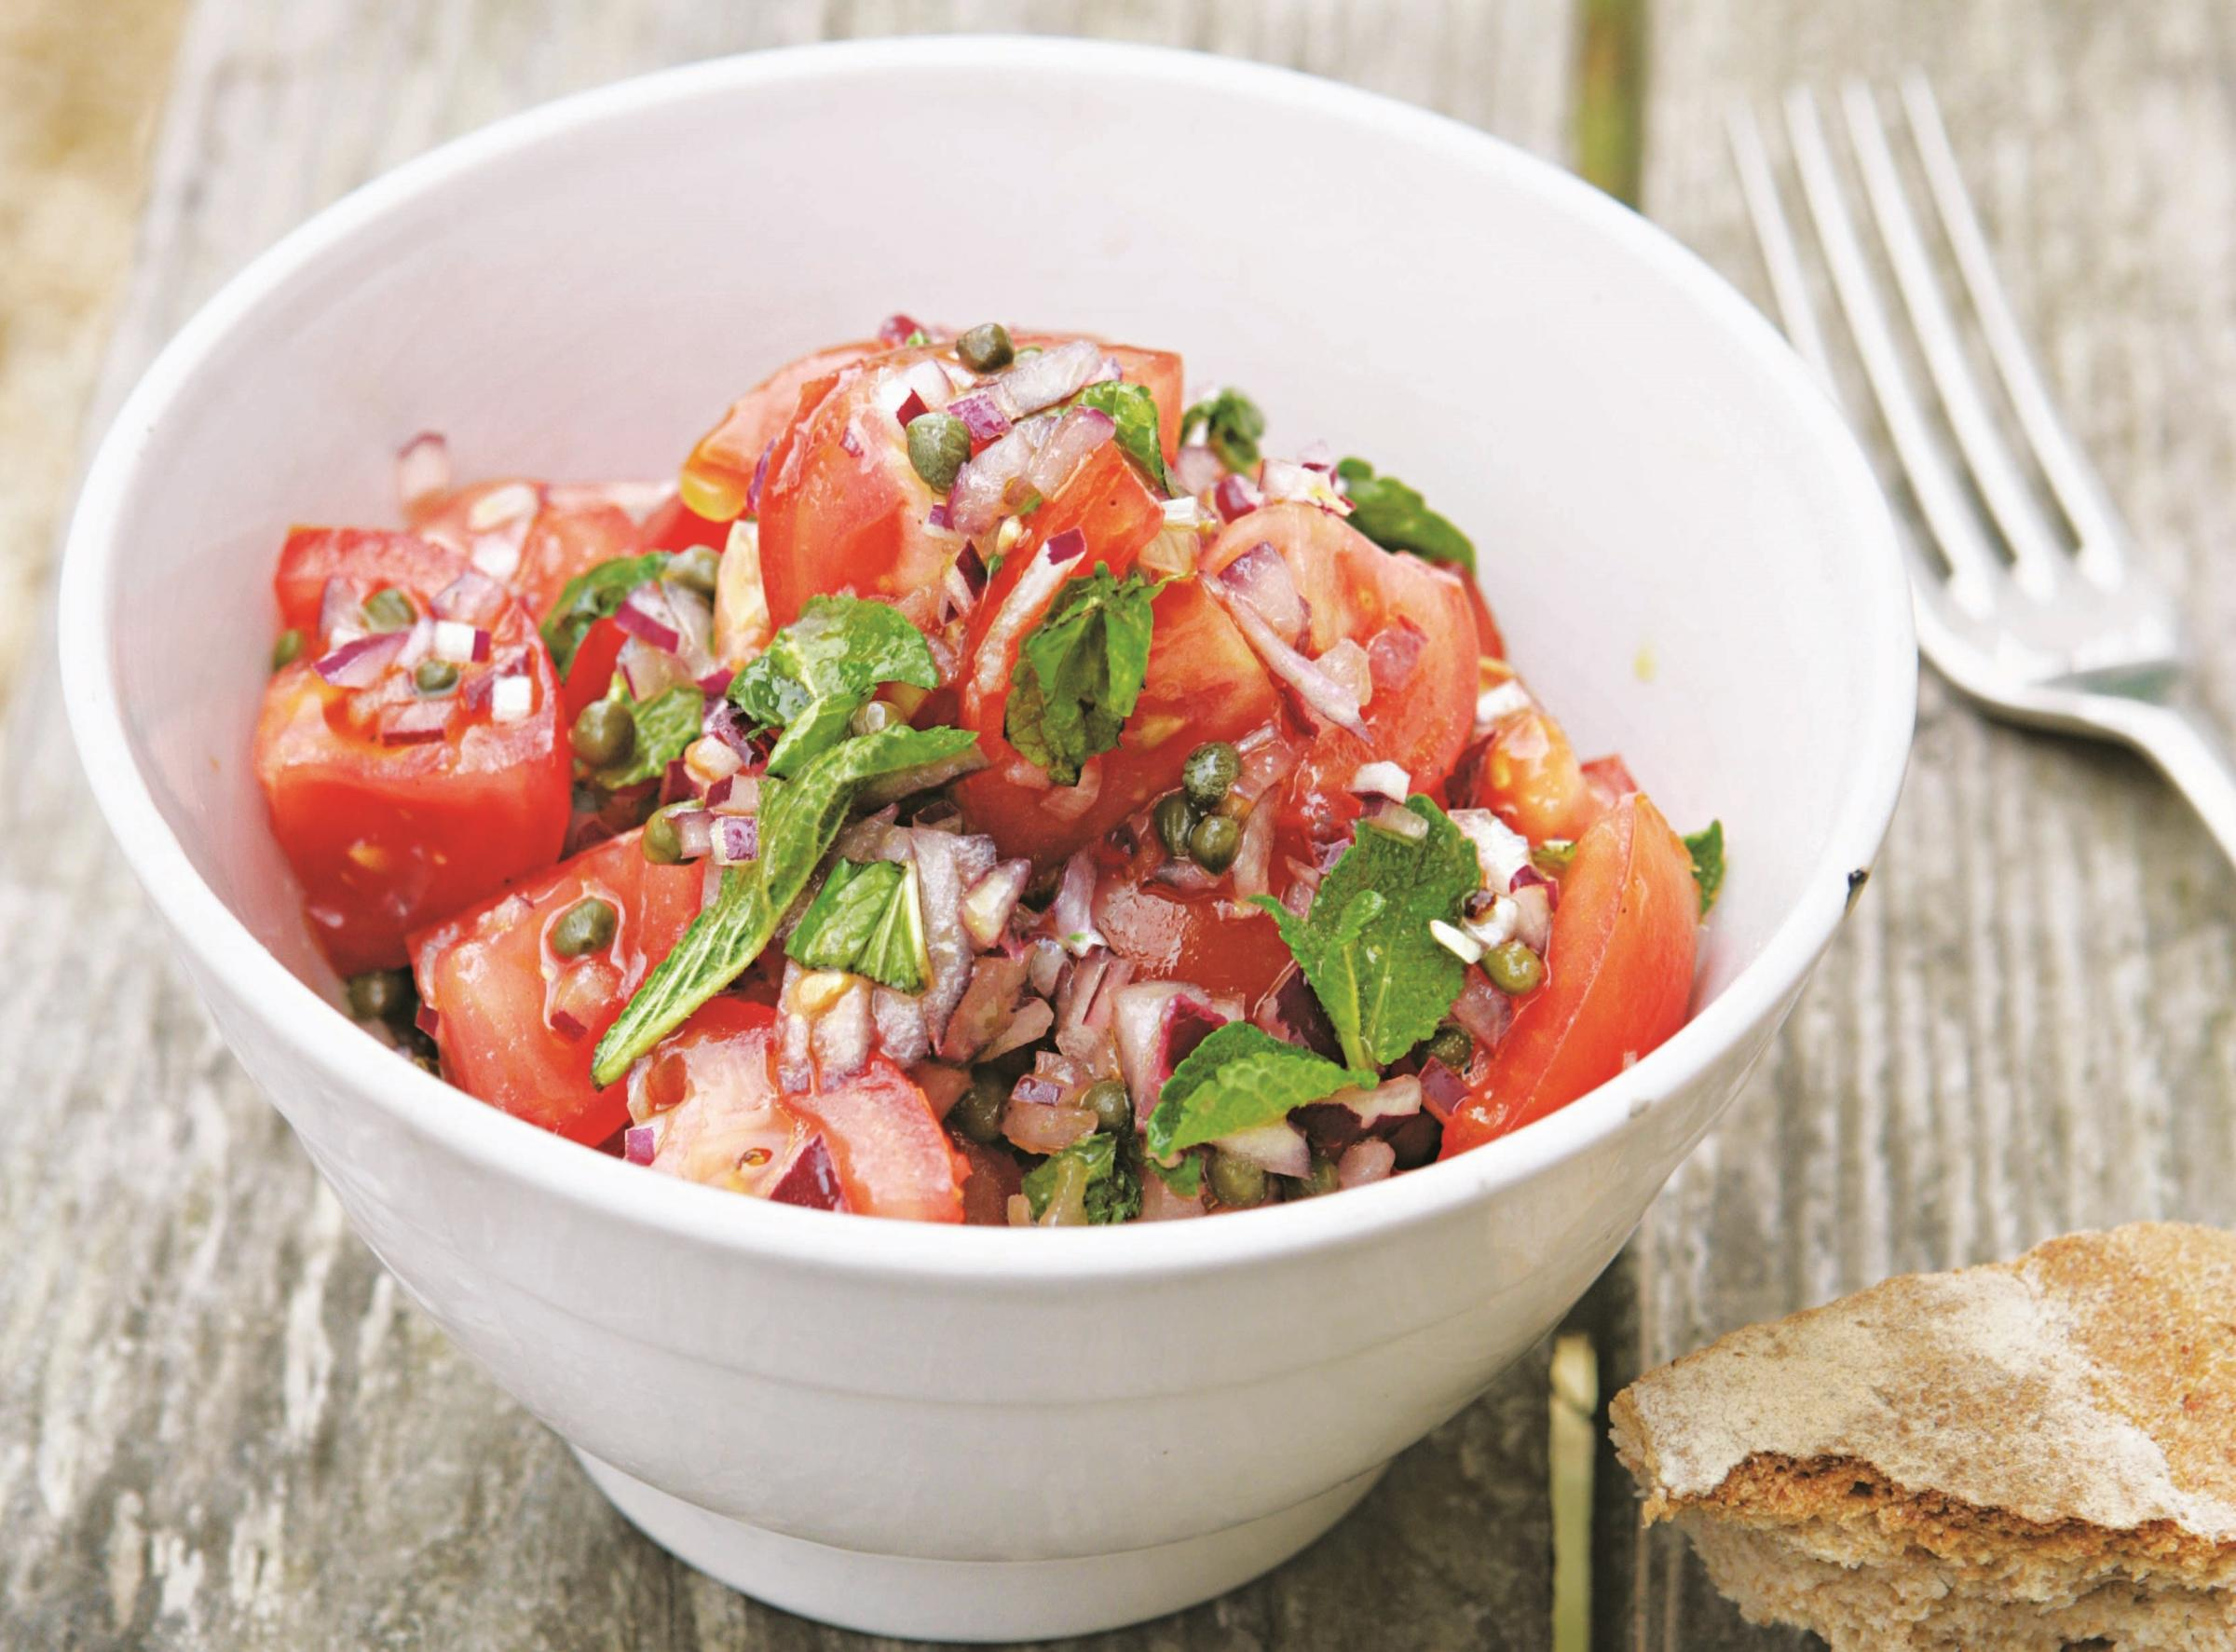 Hugh Fearnley-Whittingstall's tomato salsa salad with capers and mint